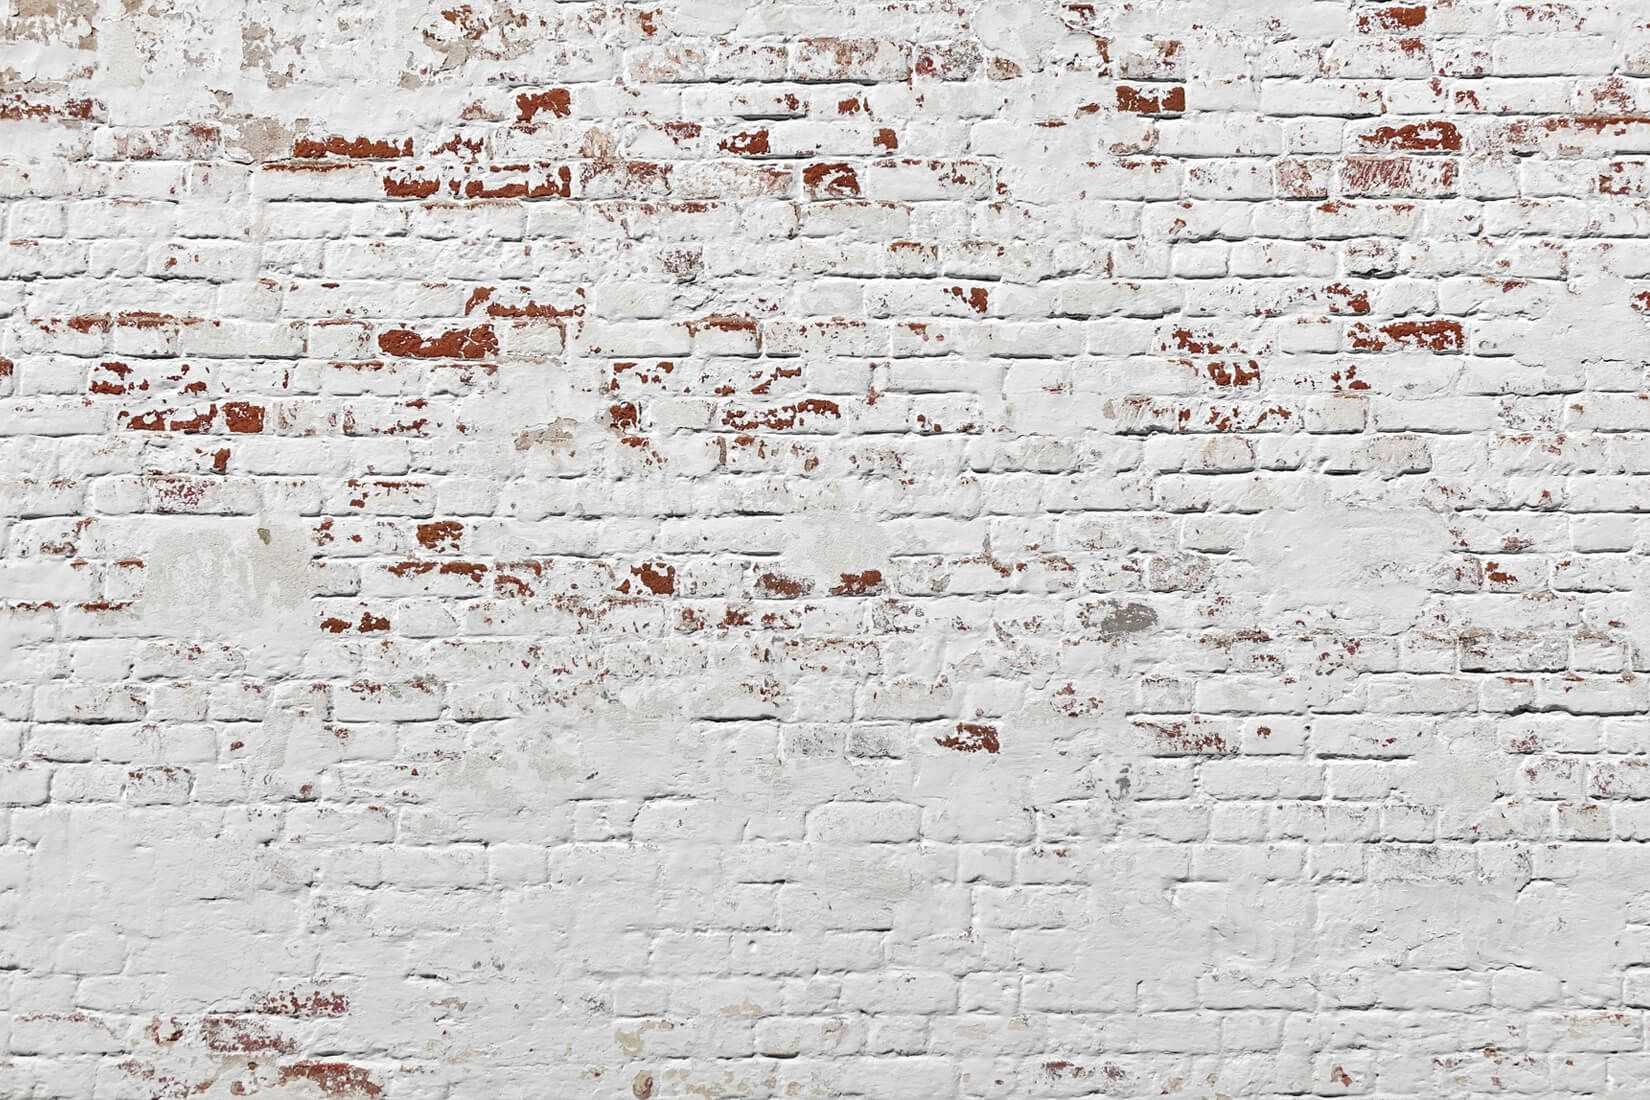 Warehouse Brick Wall Wallpaper Mural Muralswallpaper Brick Wall Wallpaper Brick Wallpaper Mural Brick Wallpaper